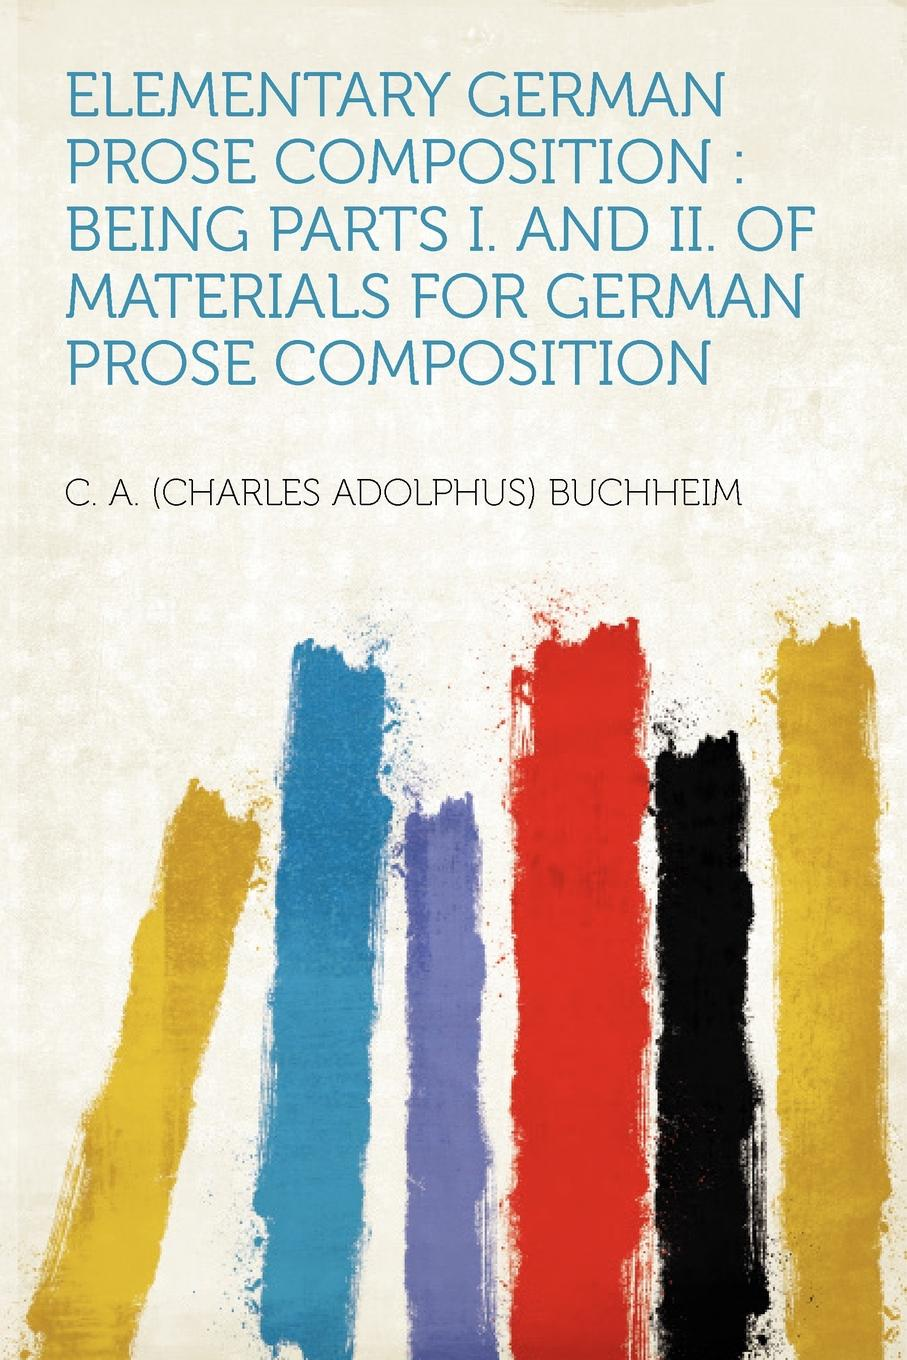 Elementary German Prose Composition. Being Parts I. and II. of Materials for German Prose Composition.